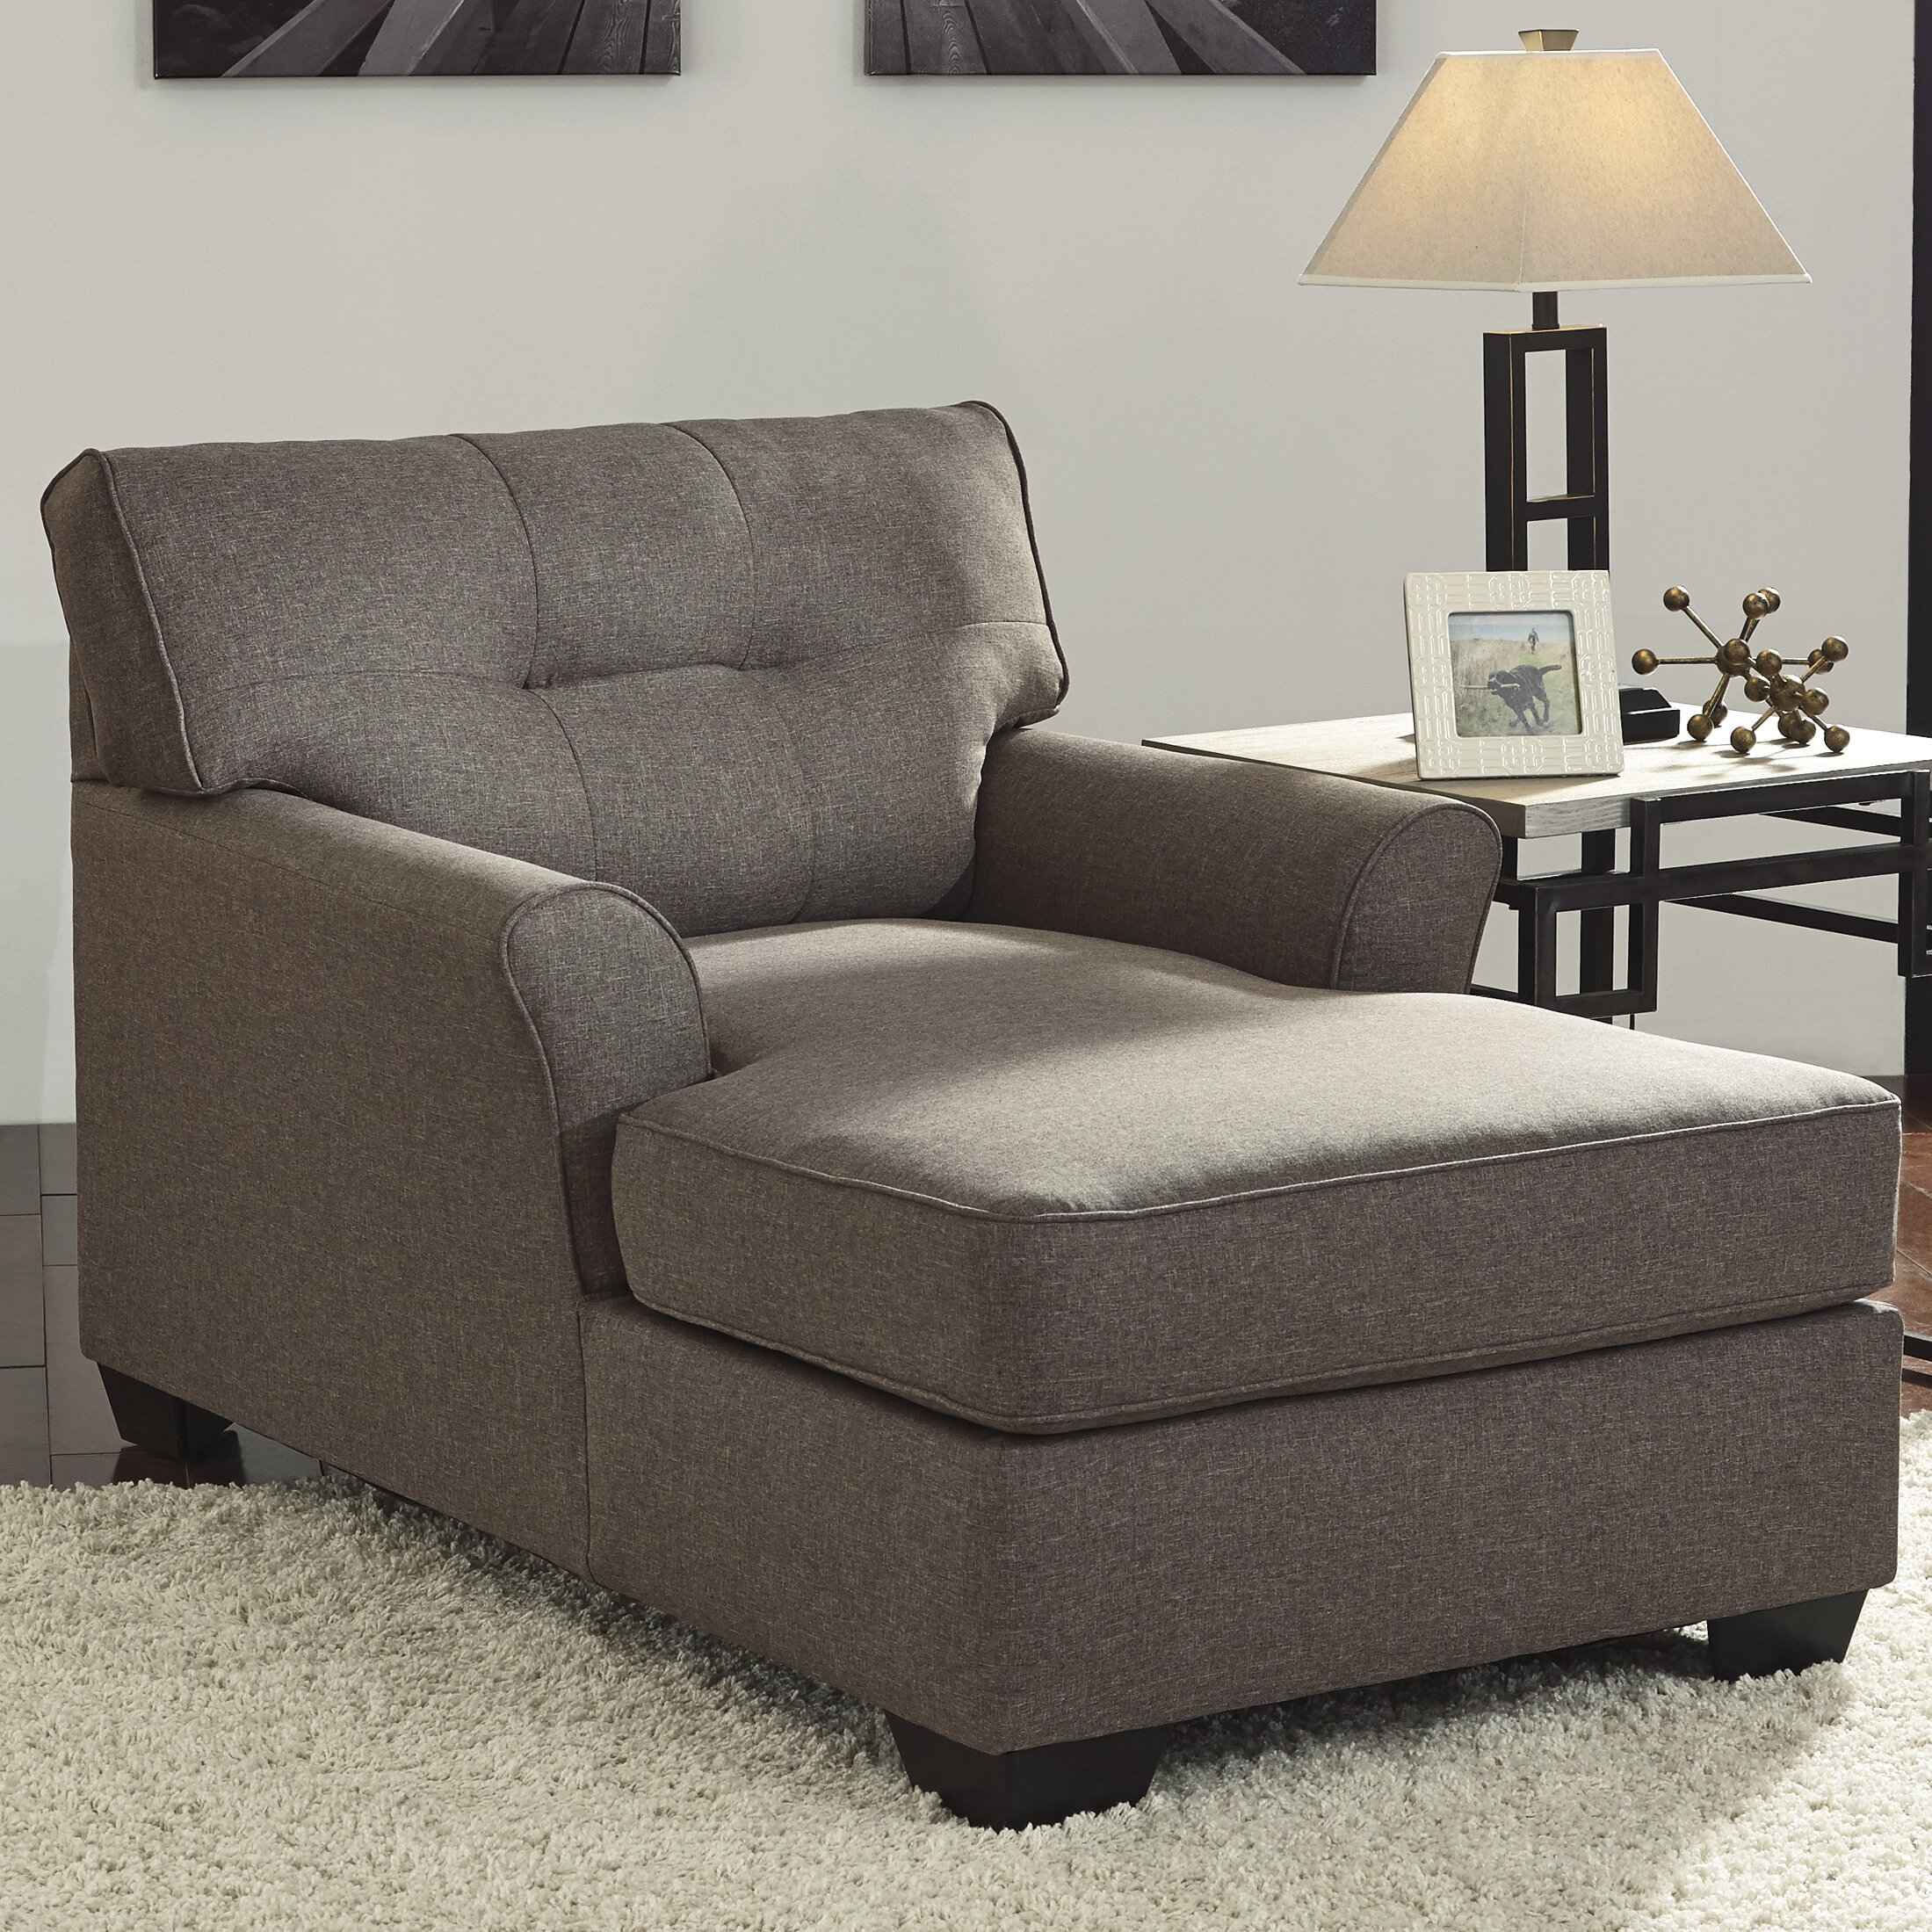 Signature Design By Ashley Tibbee Chaise Lounge Amp Reviews